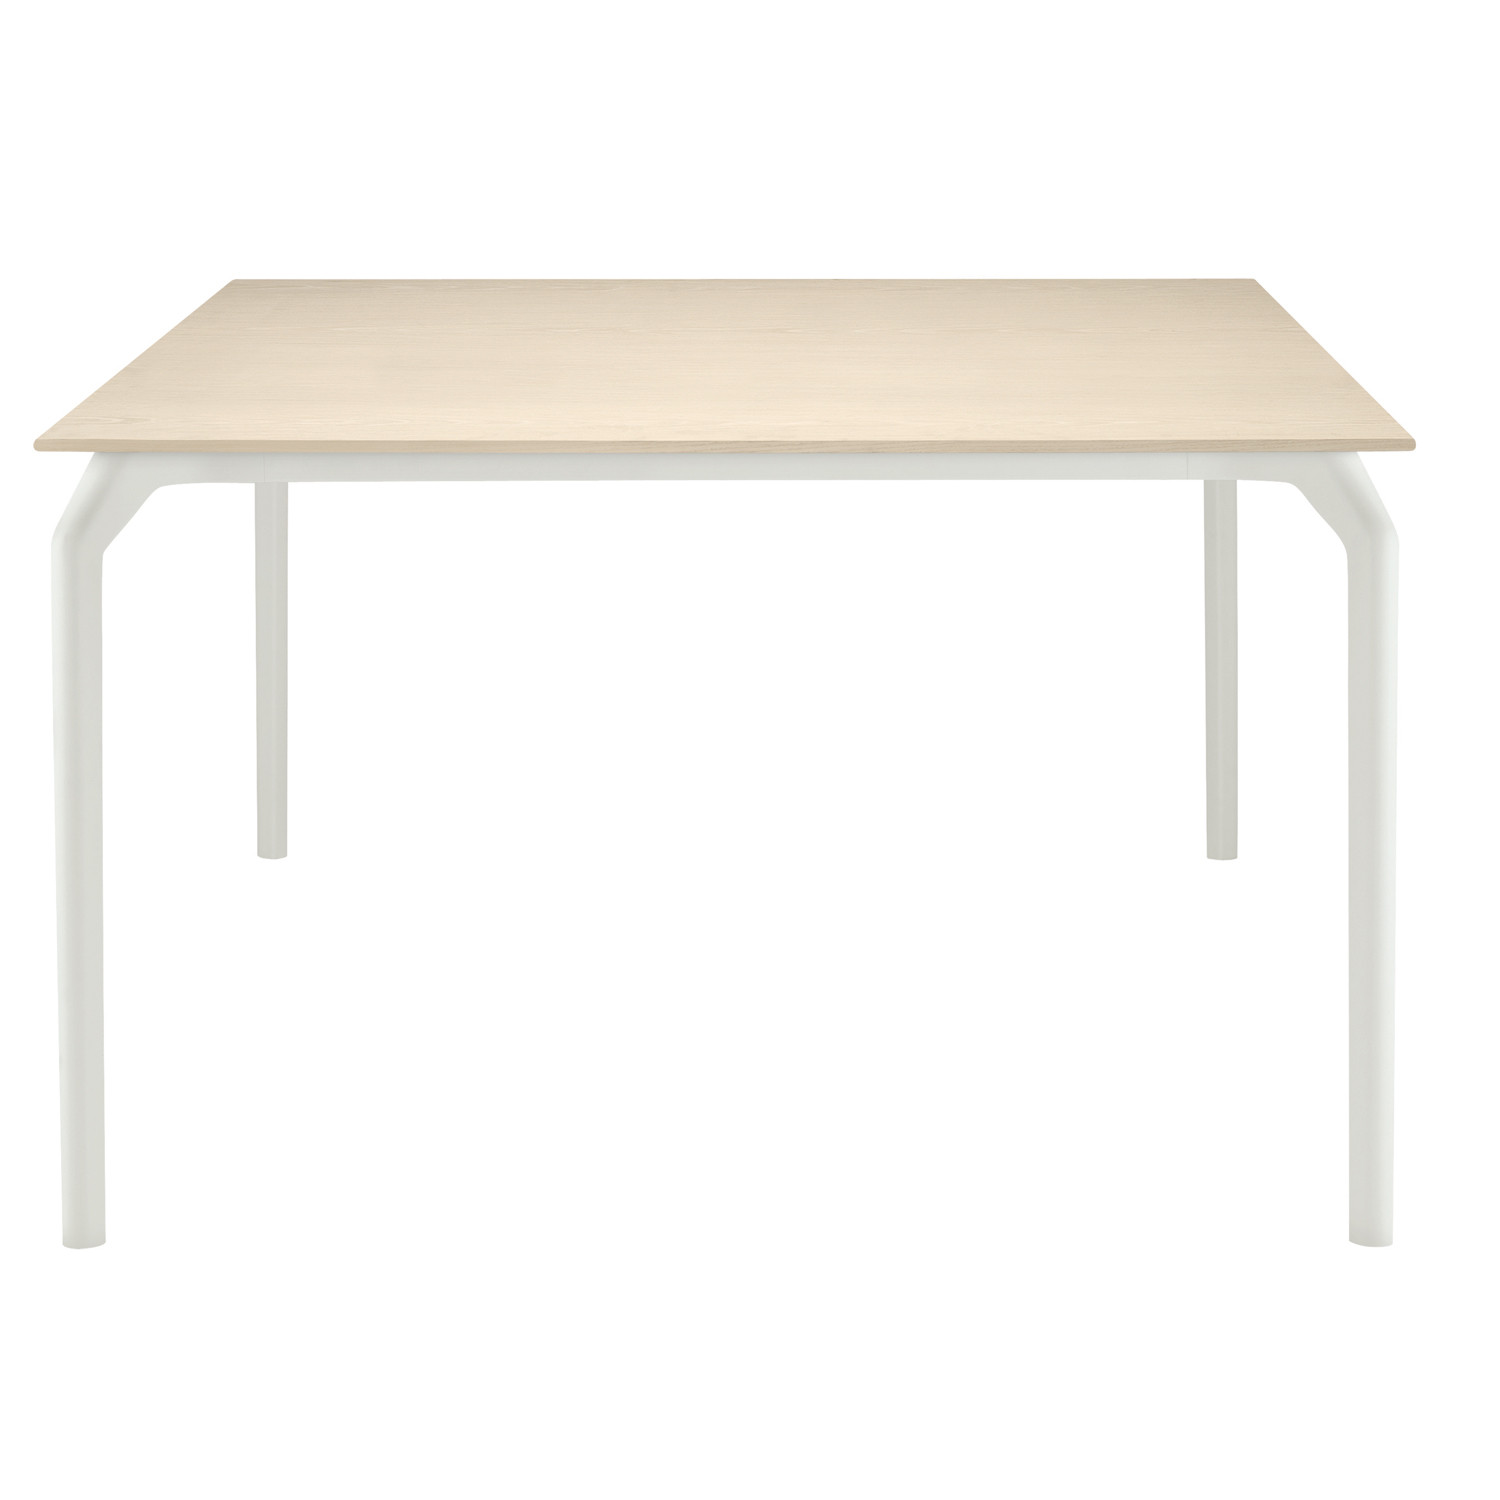 TEC Table in whitened oak